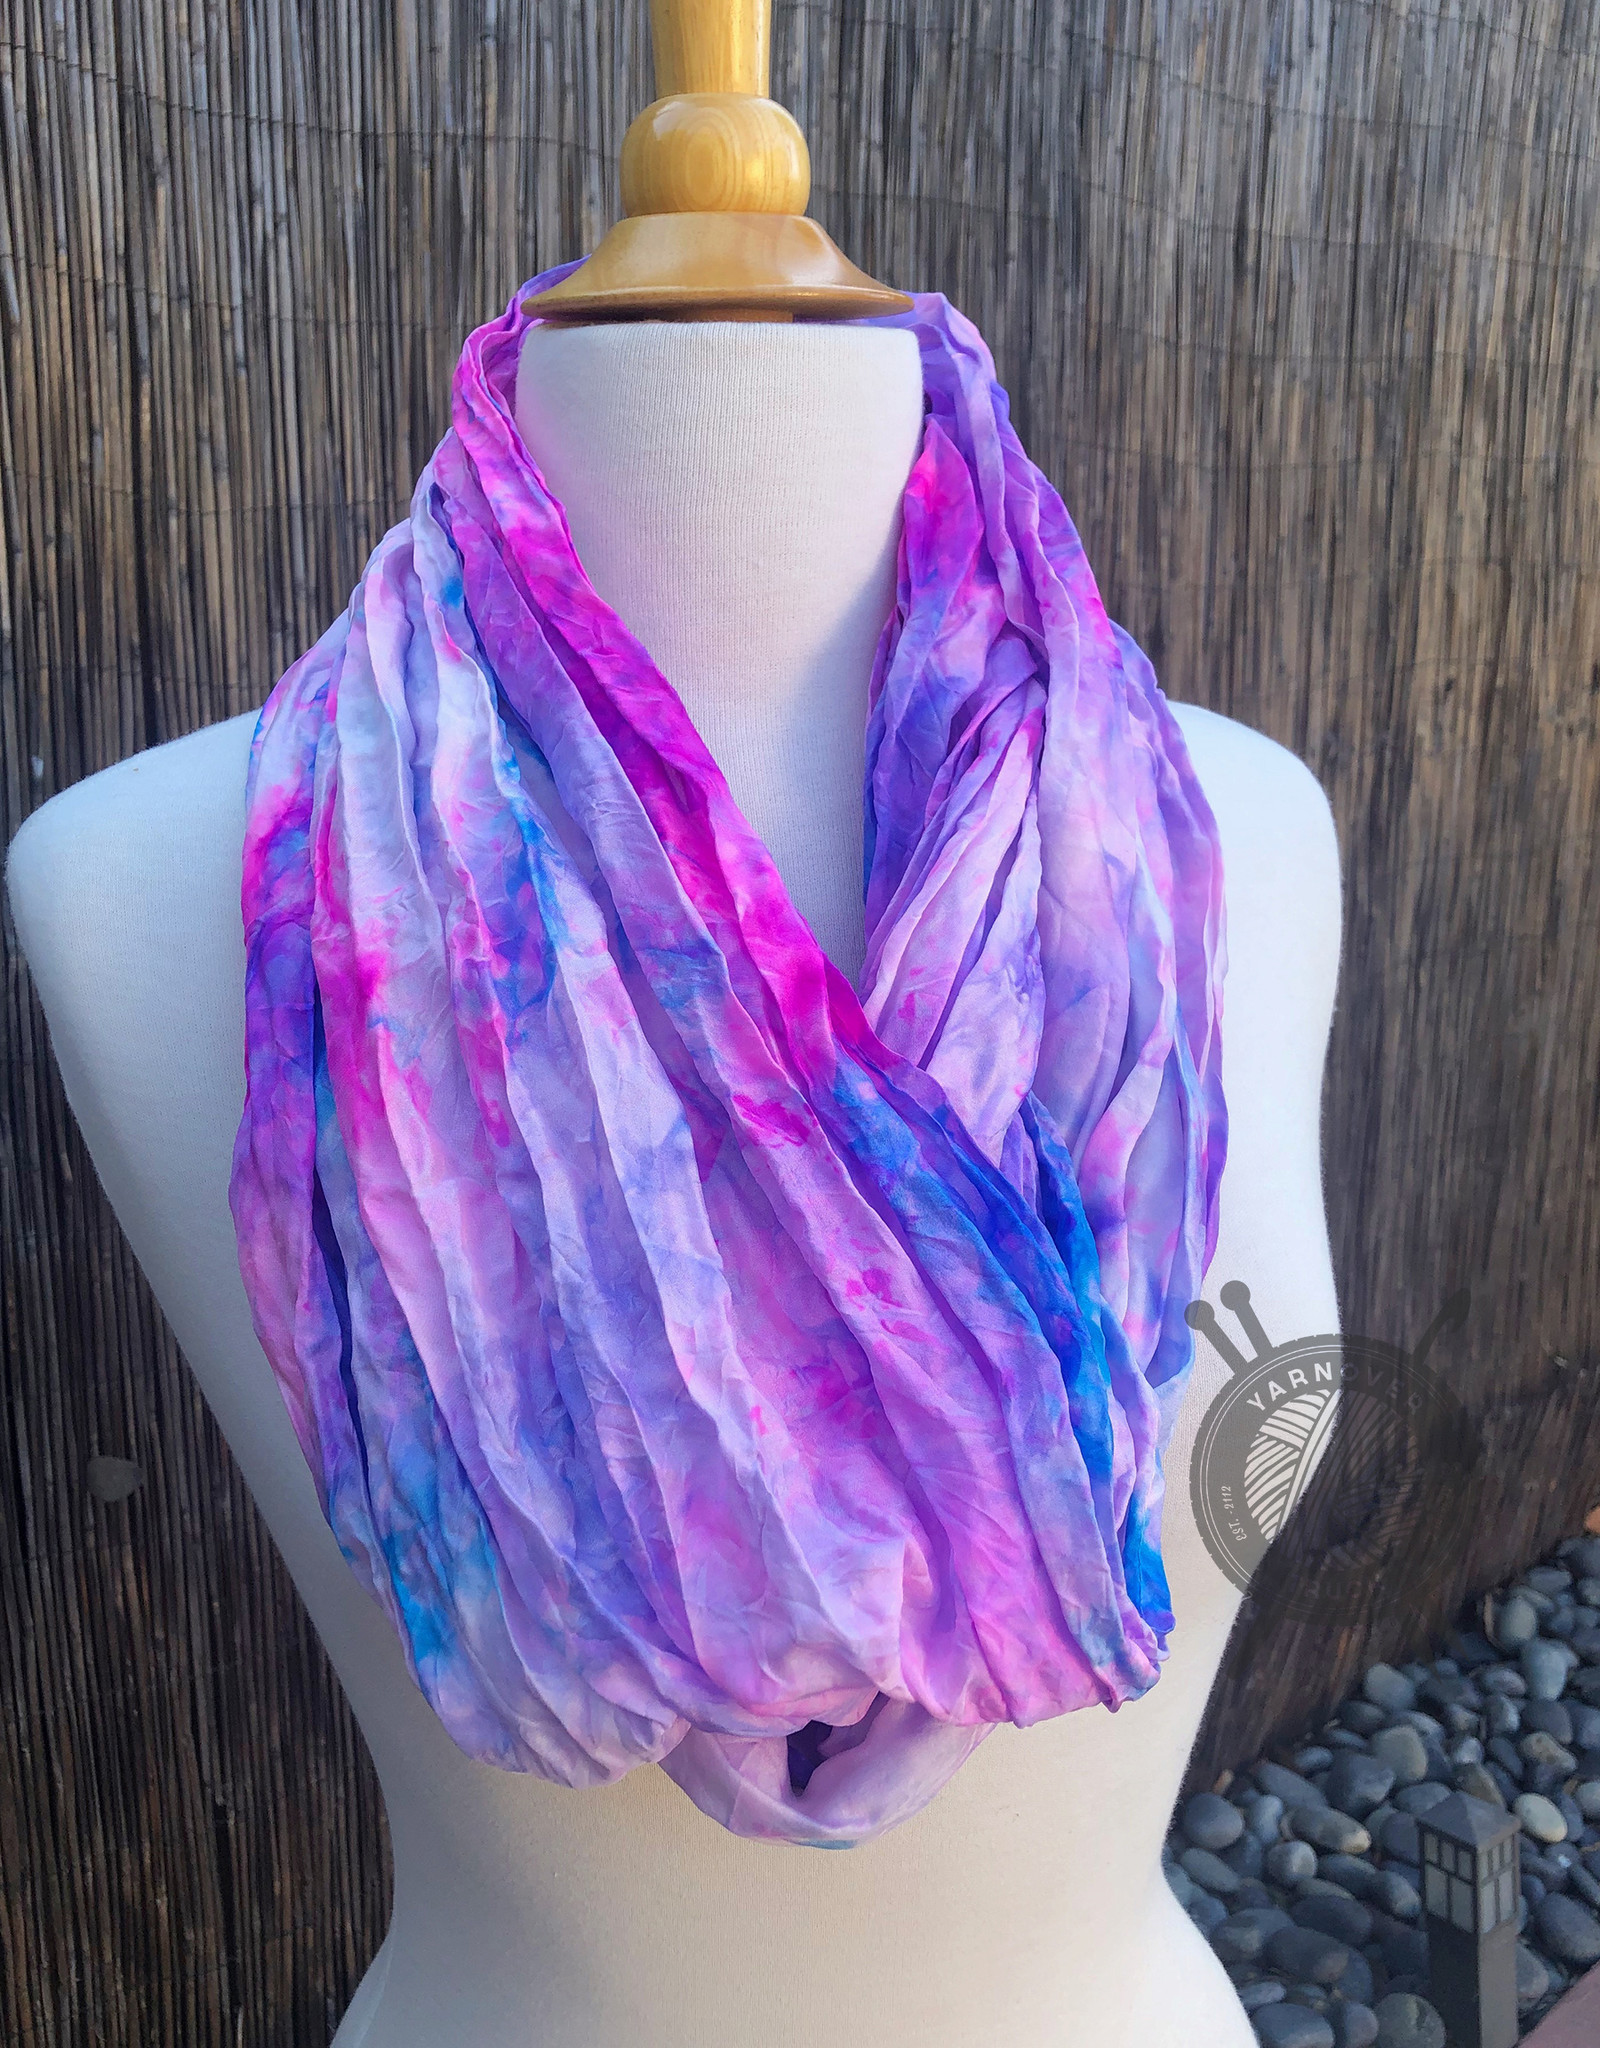 Oink Pigments Super Dope Heliotrope Silk Scarf from Oink Pigments